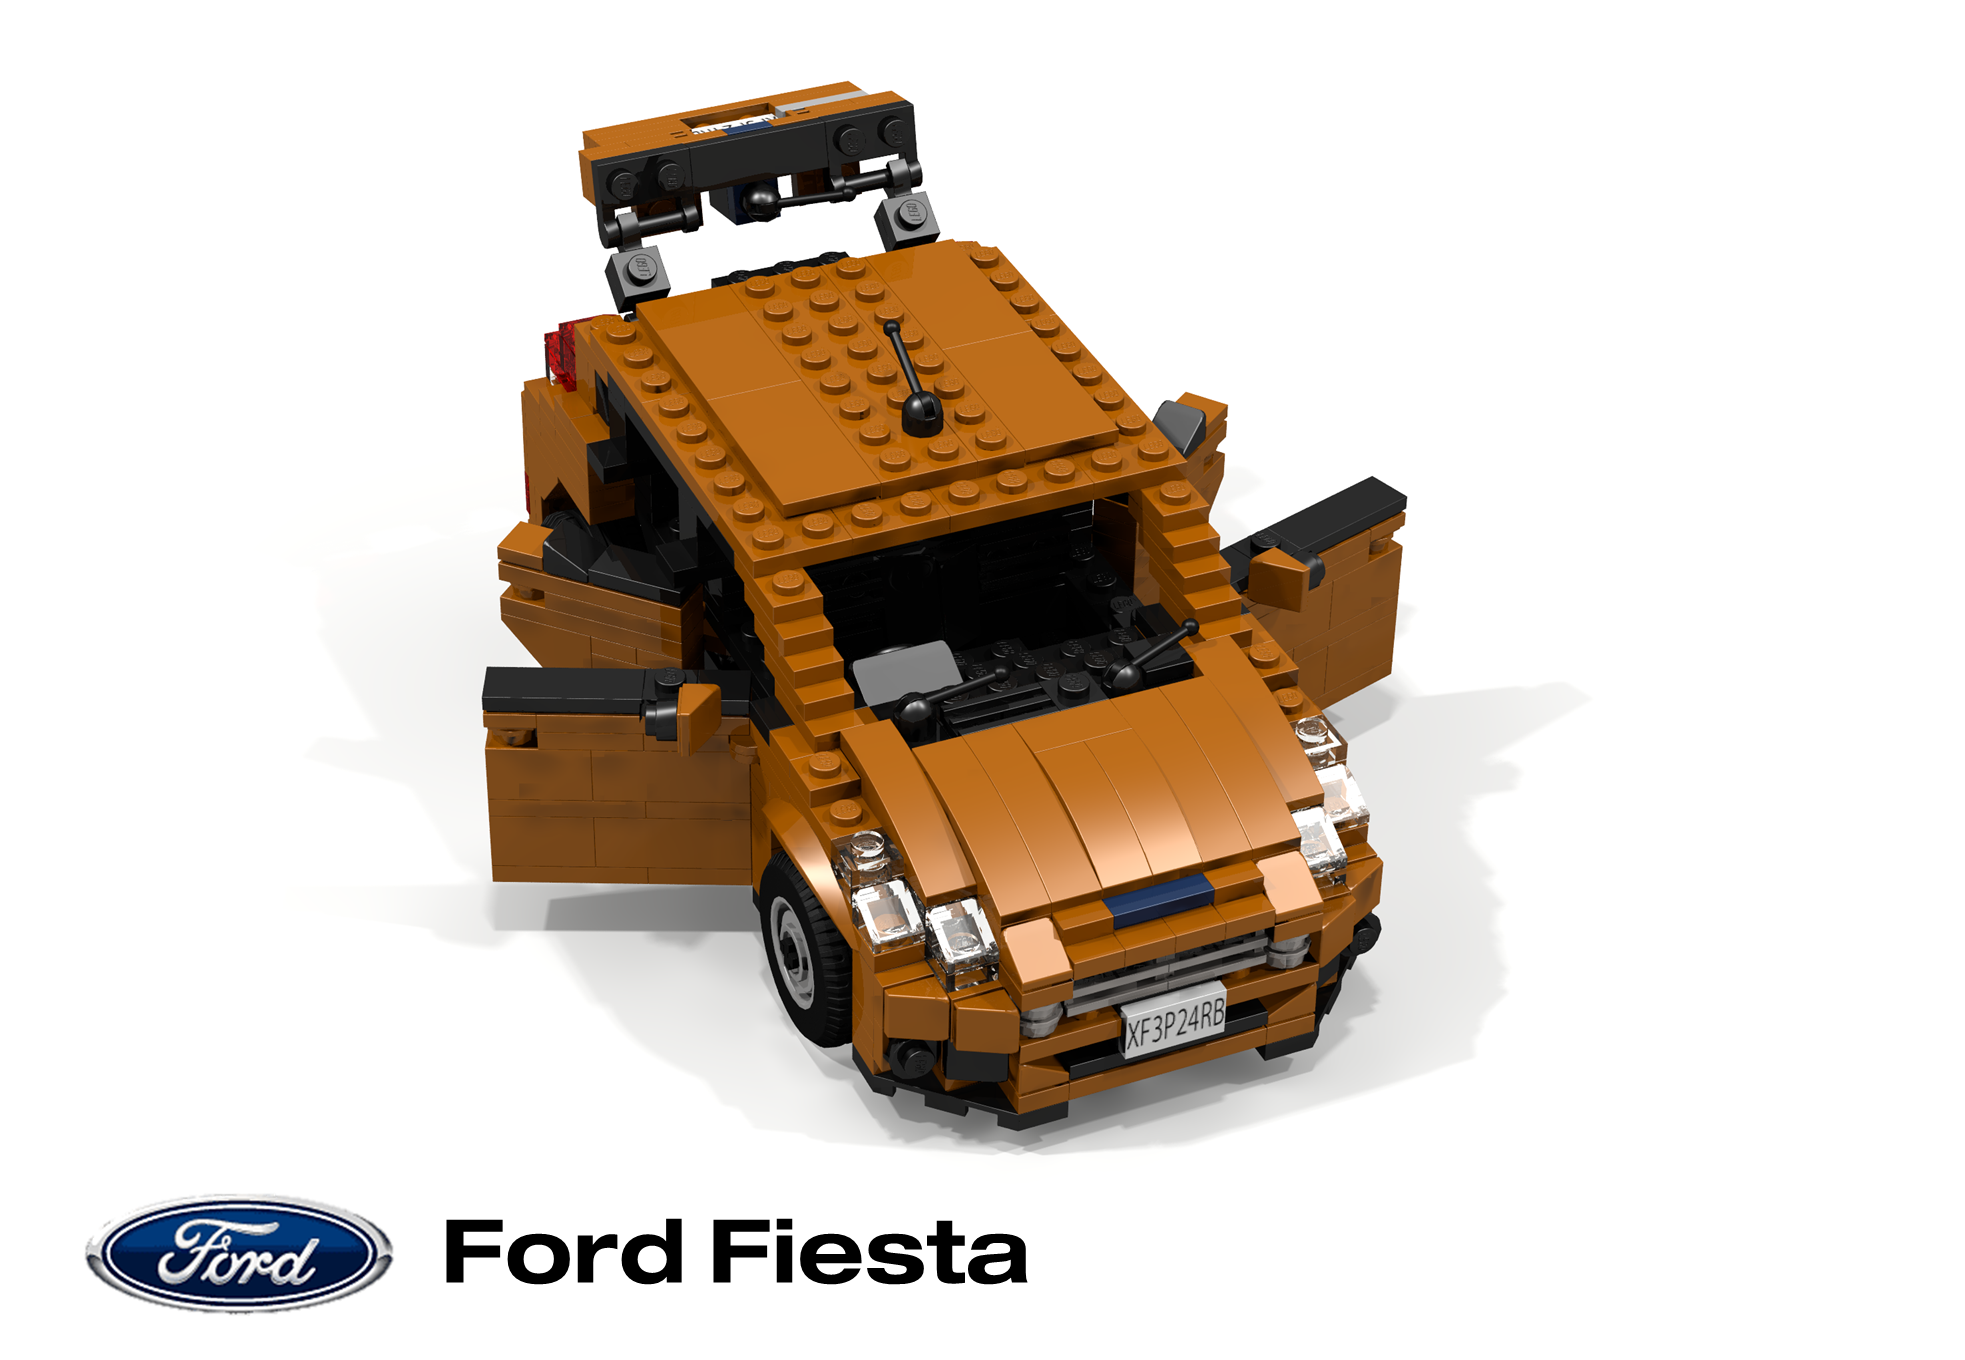 ford_fiesta_b299_base_5-door_04.png